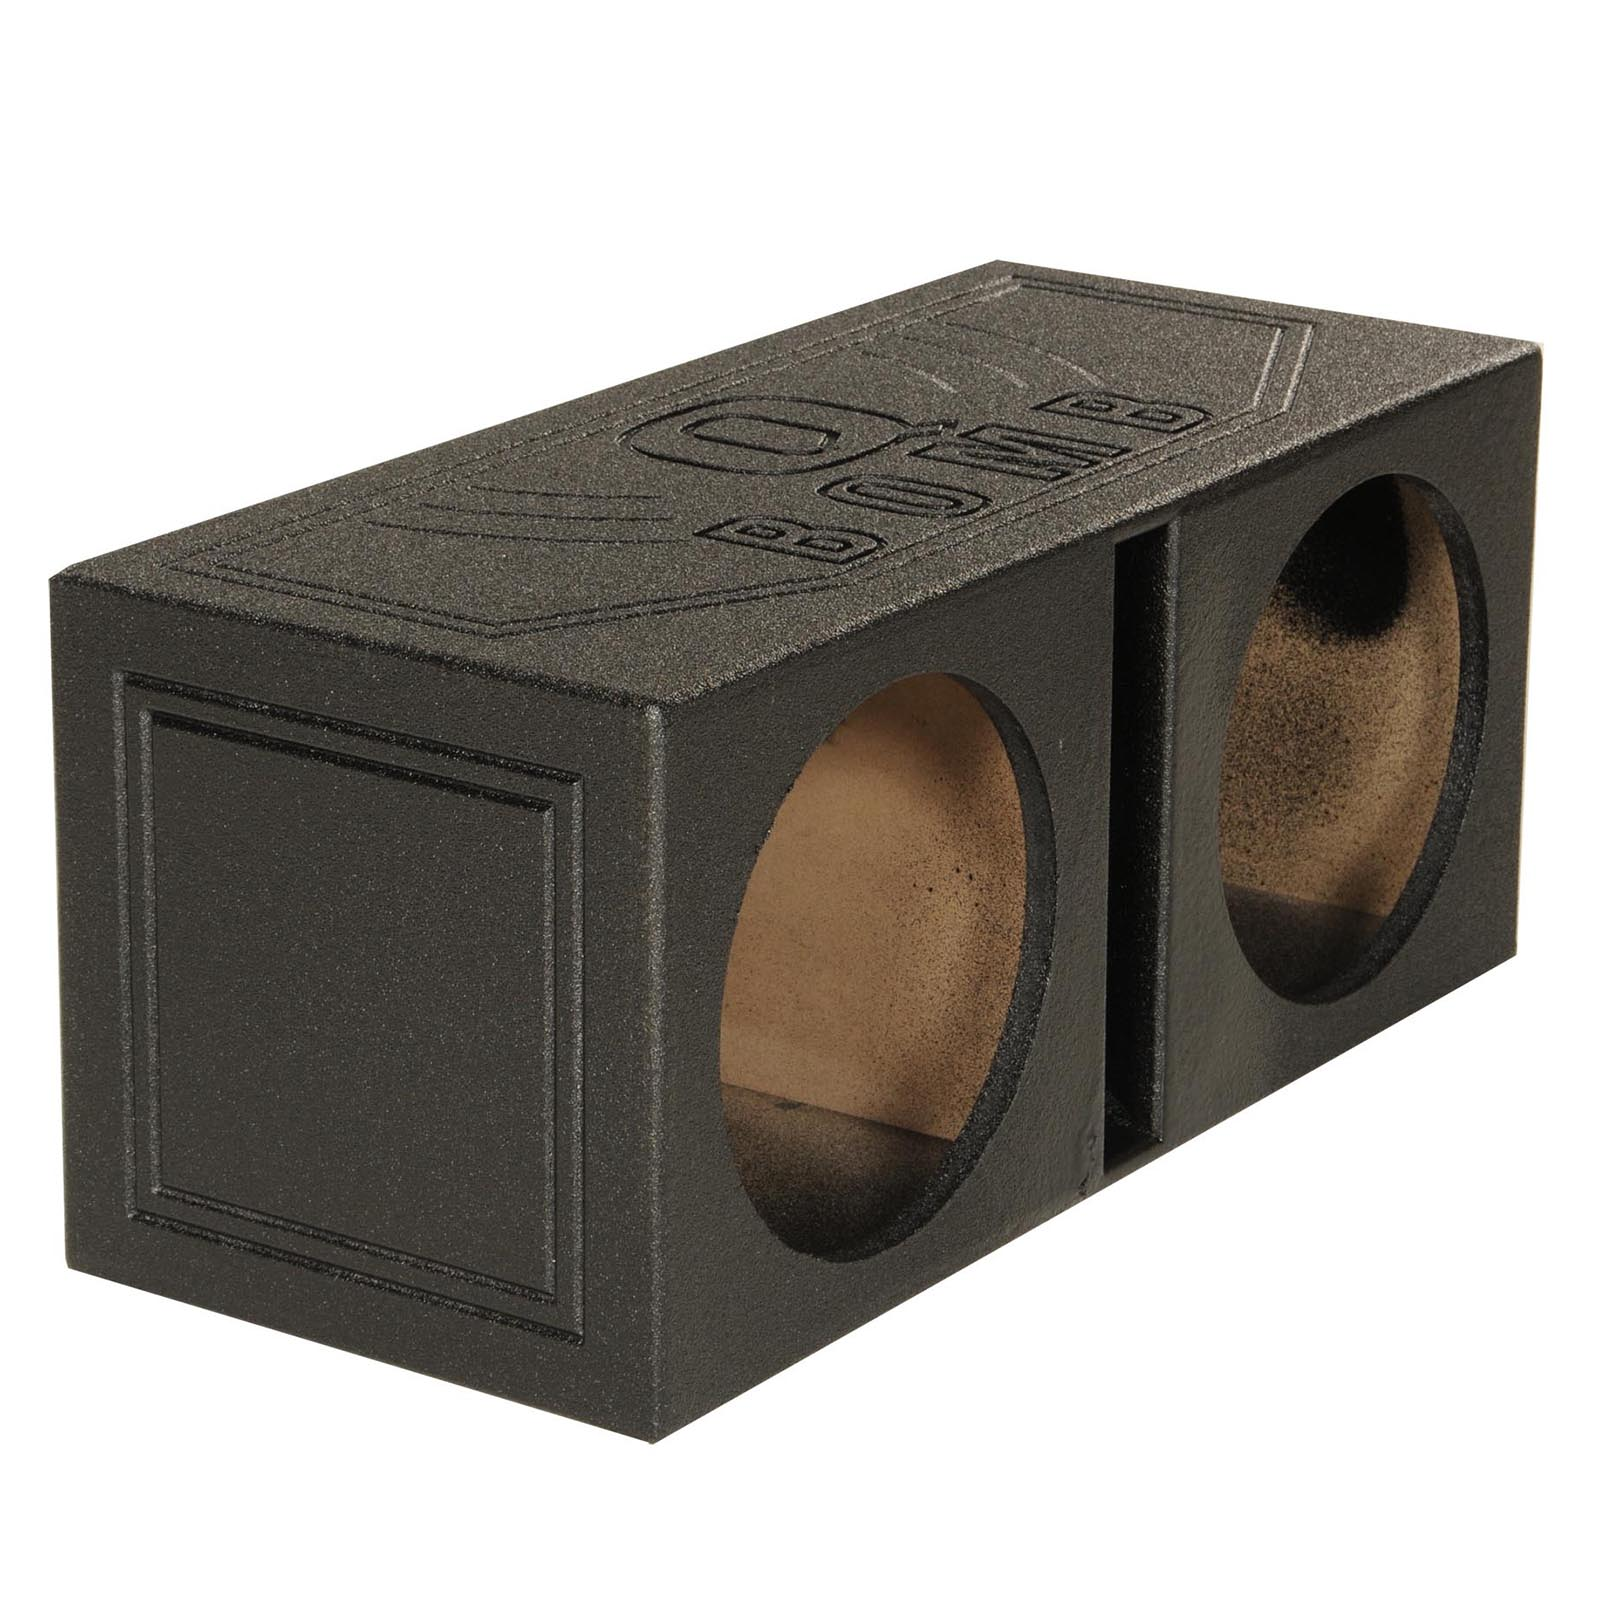 Q Power QBOMB10V Dual 10 Inch Vented Port Subwoofer Sub Box w/ Bedliner Spray